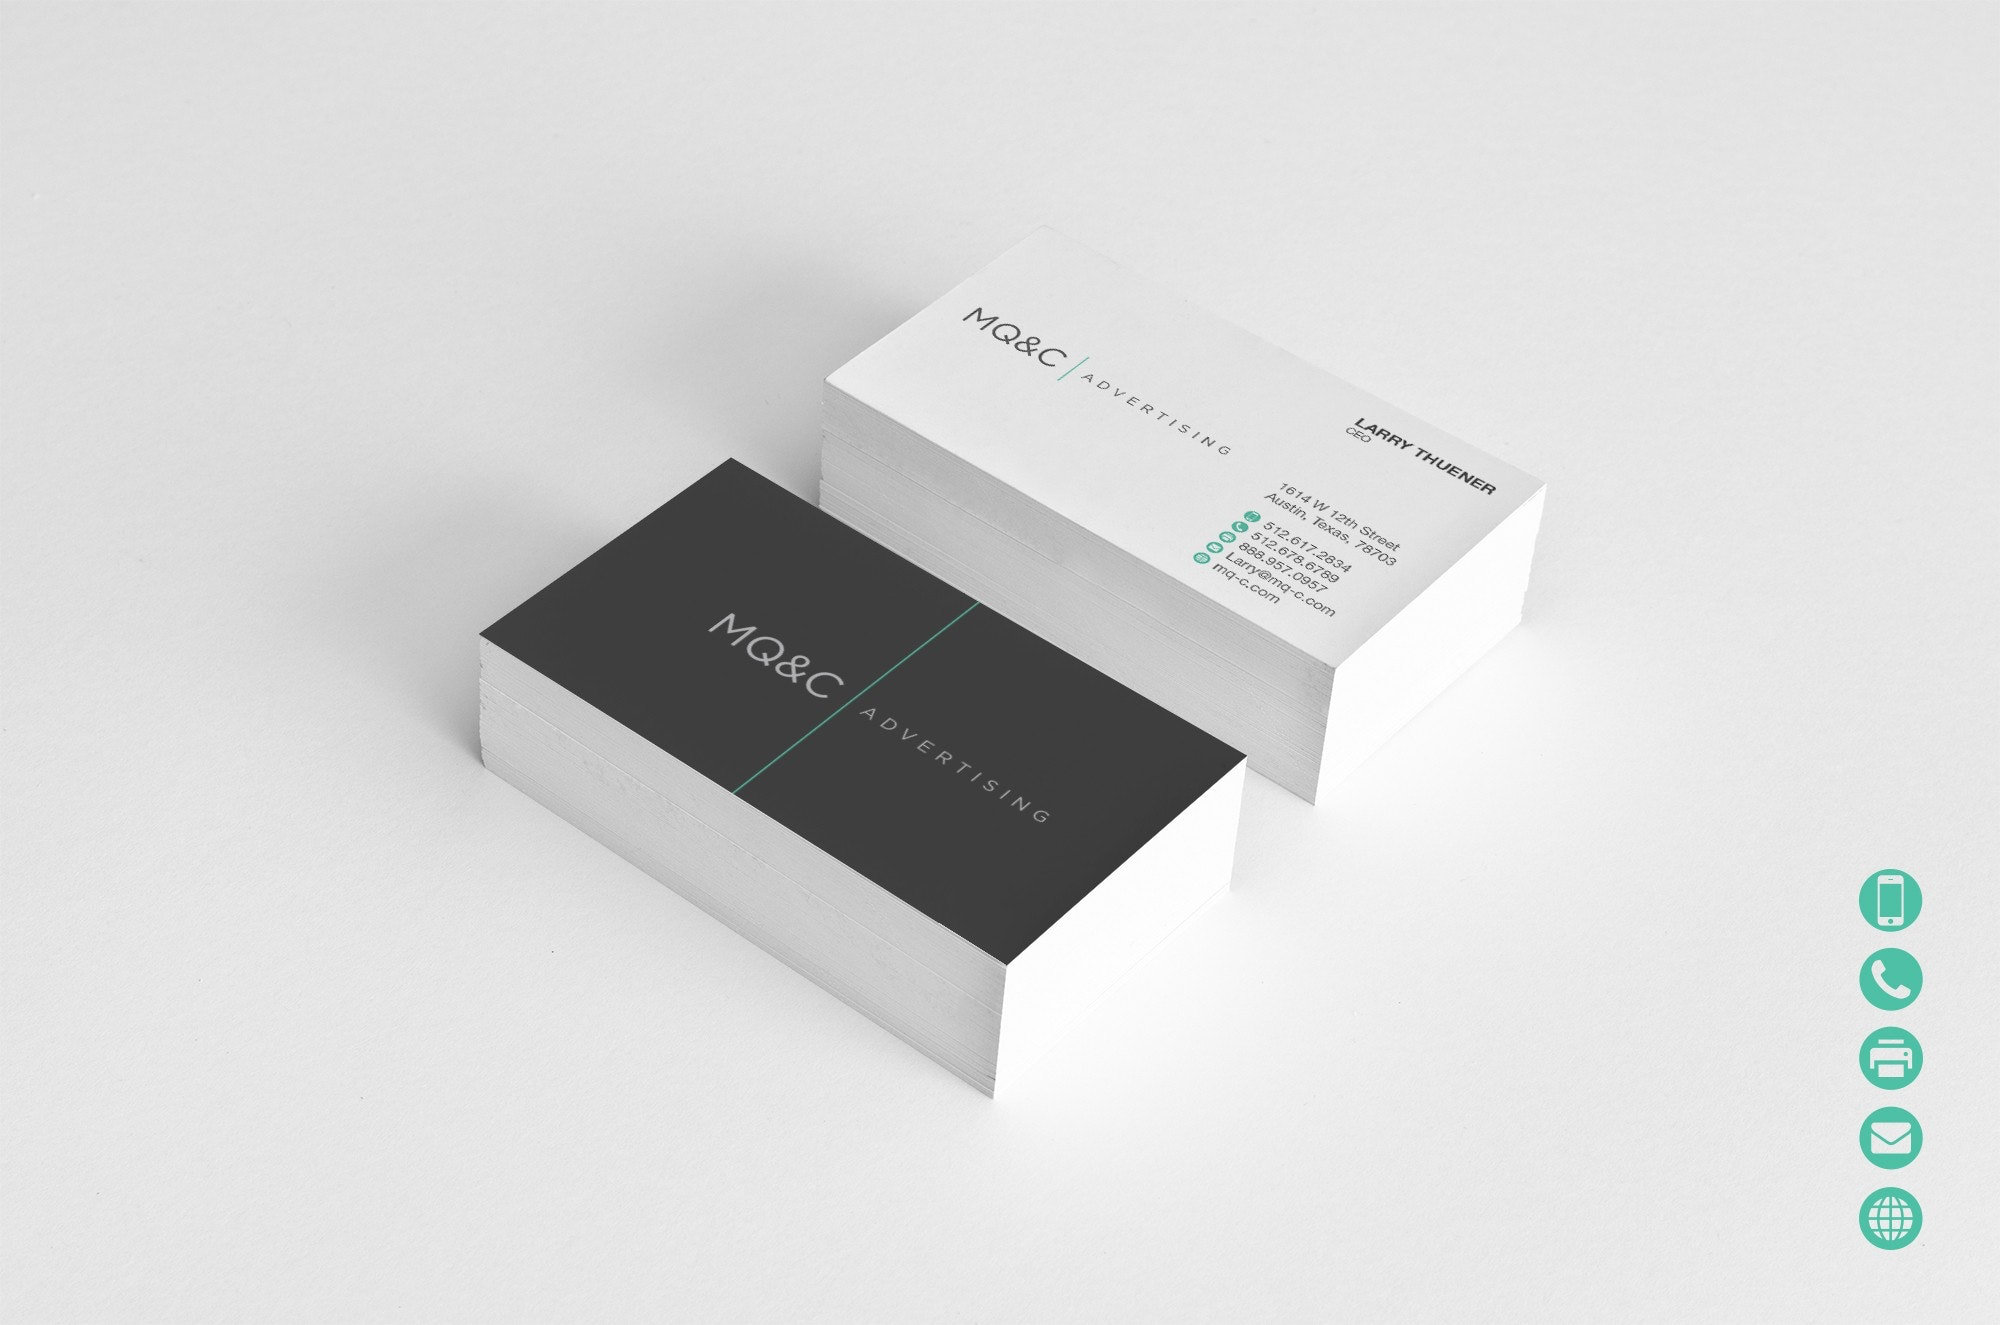 Brand messaging in business card design